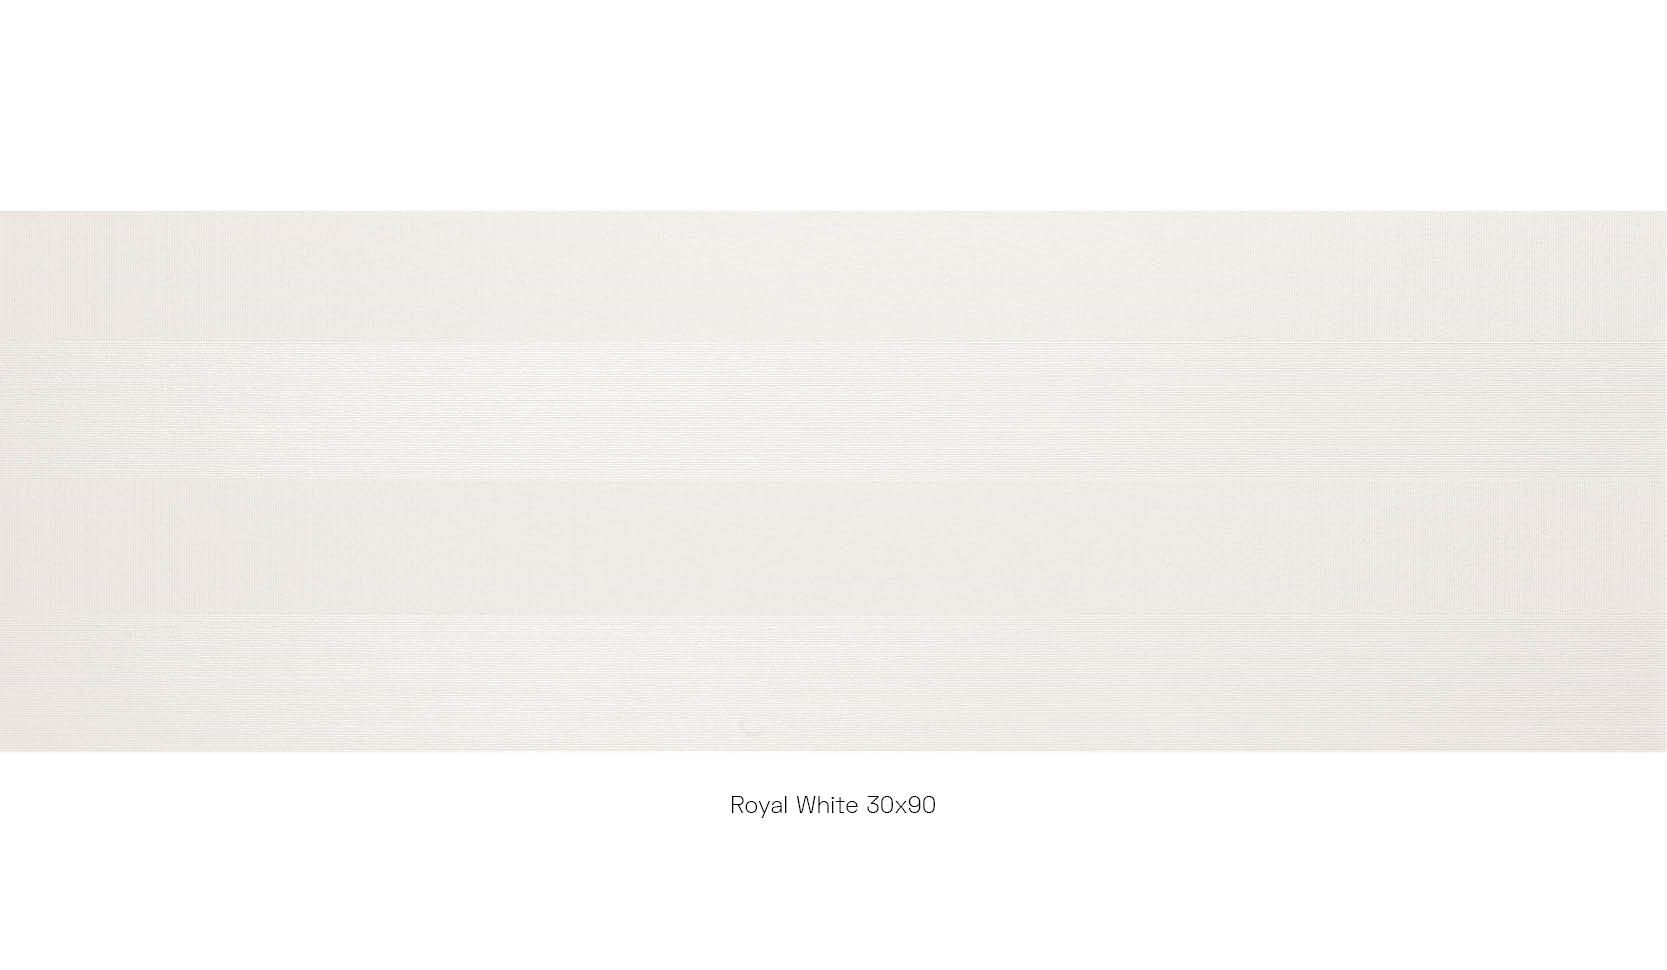 Royal white 30 x 90